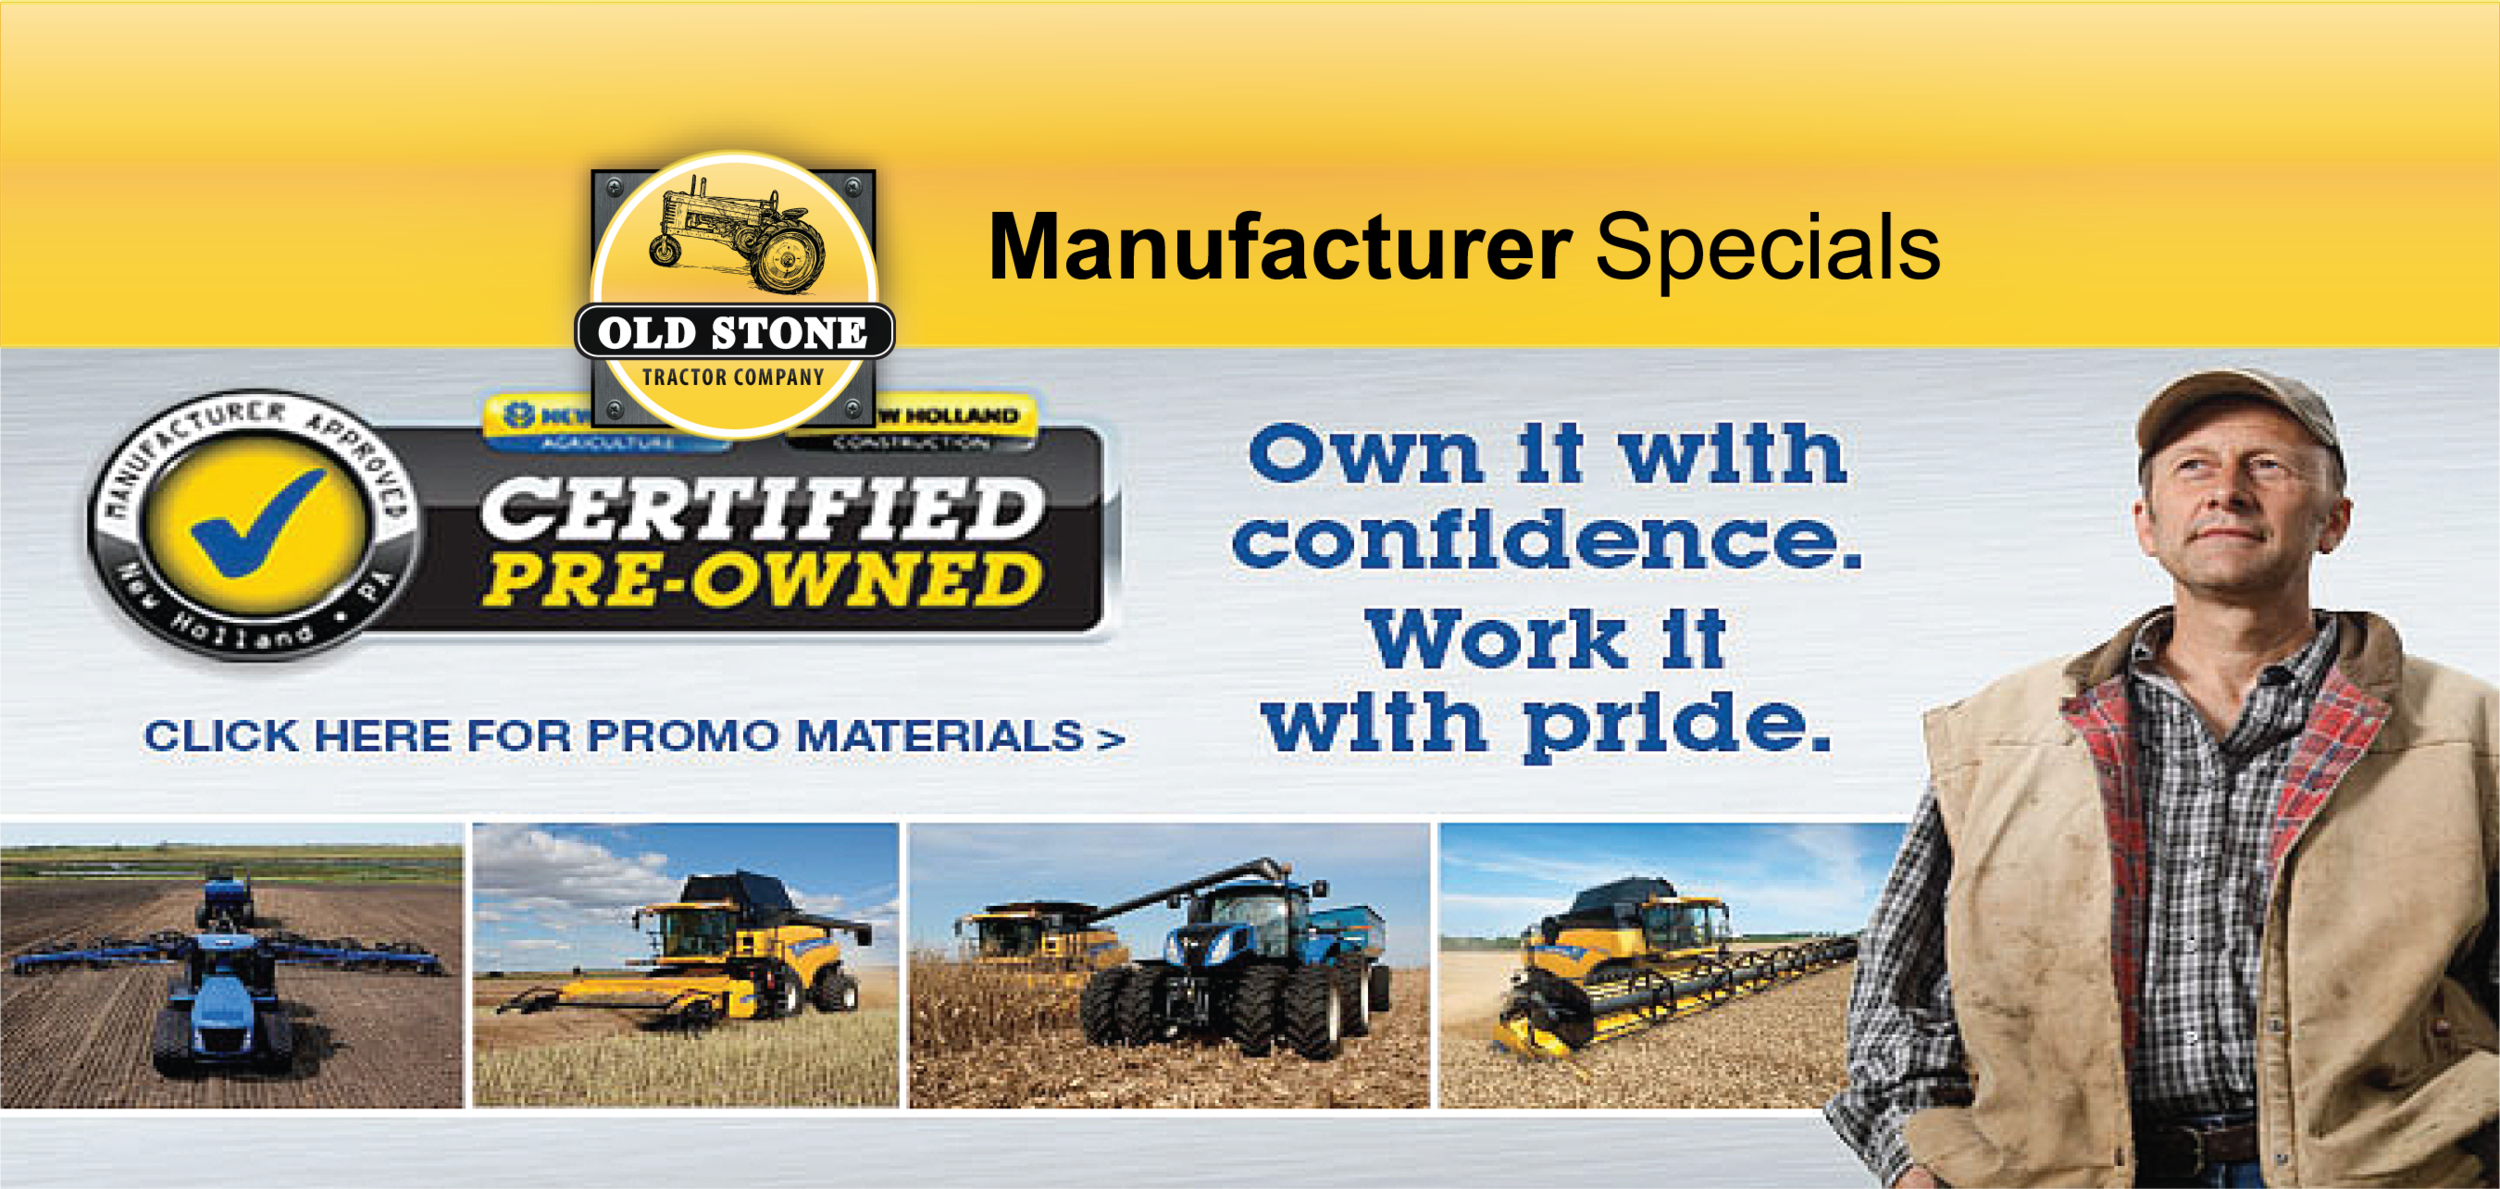 Old Stone Tractor Company - Agriculture Equipment, Construction Equipment, Outdoor Power Equipment